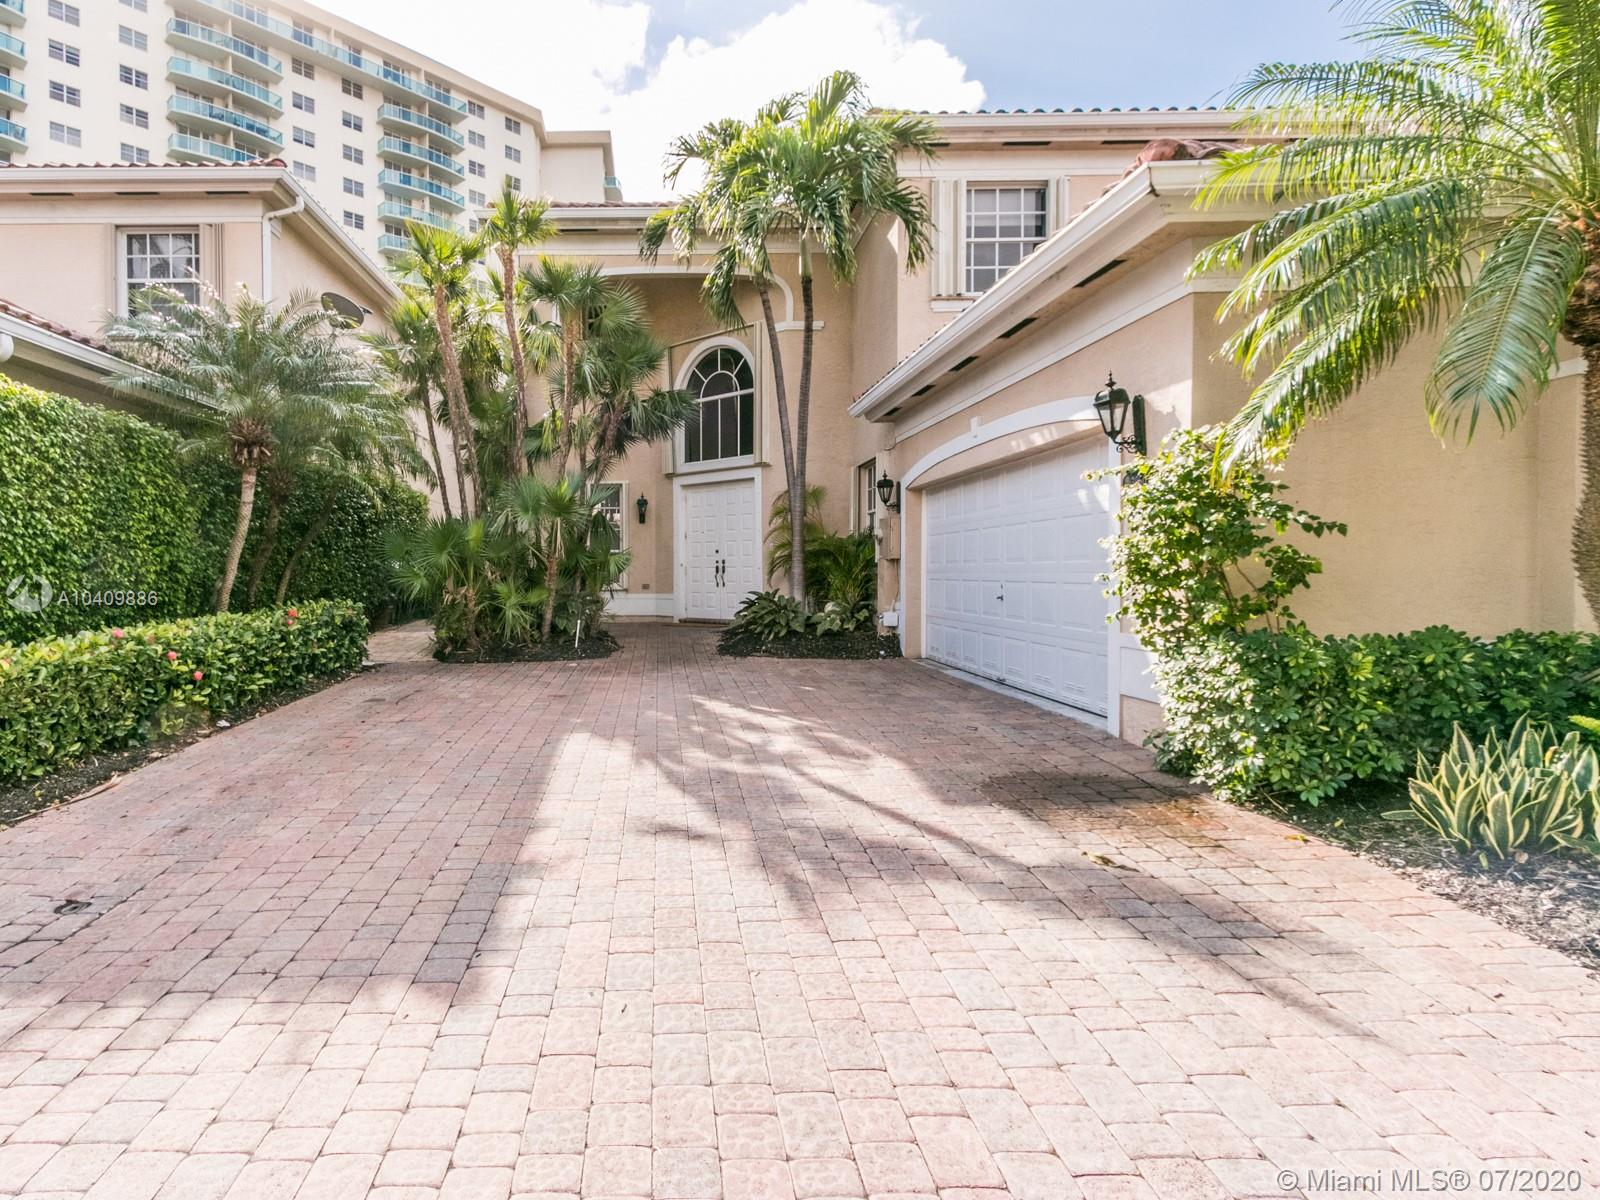 3950 194th Ln, Sunny Isles Beach, Florida